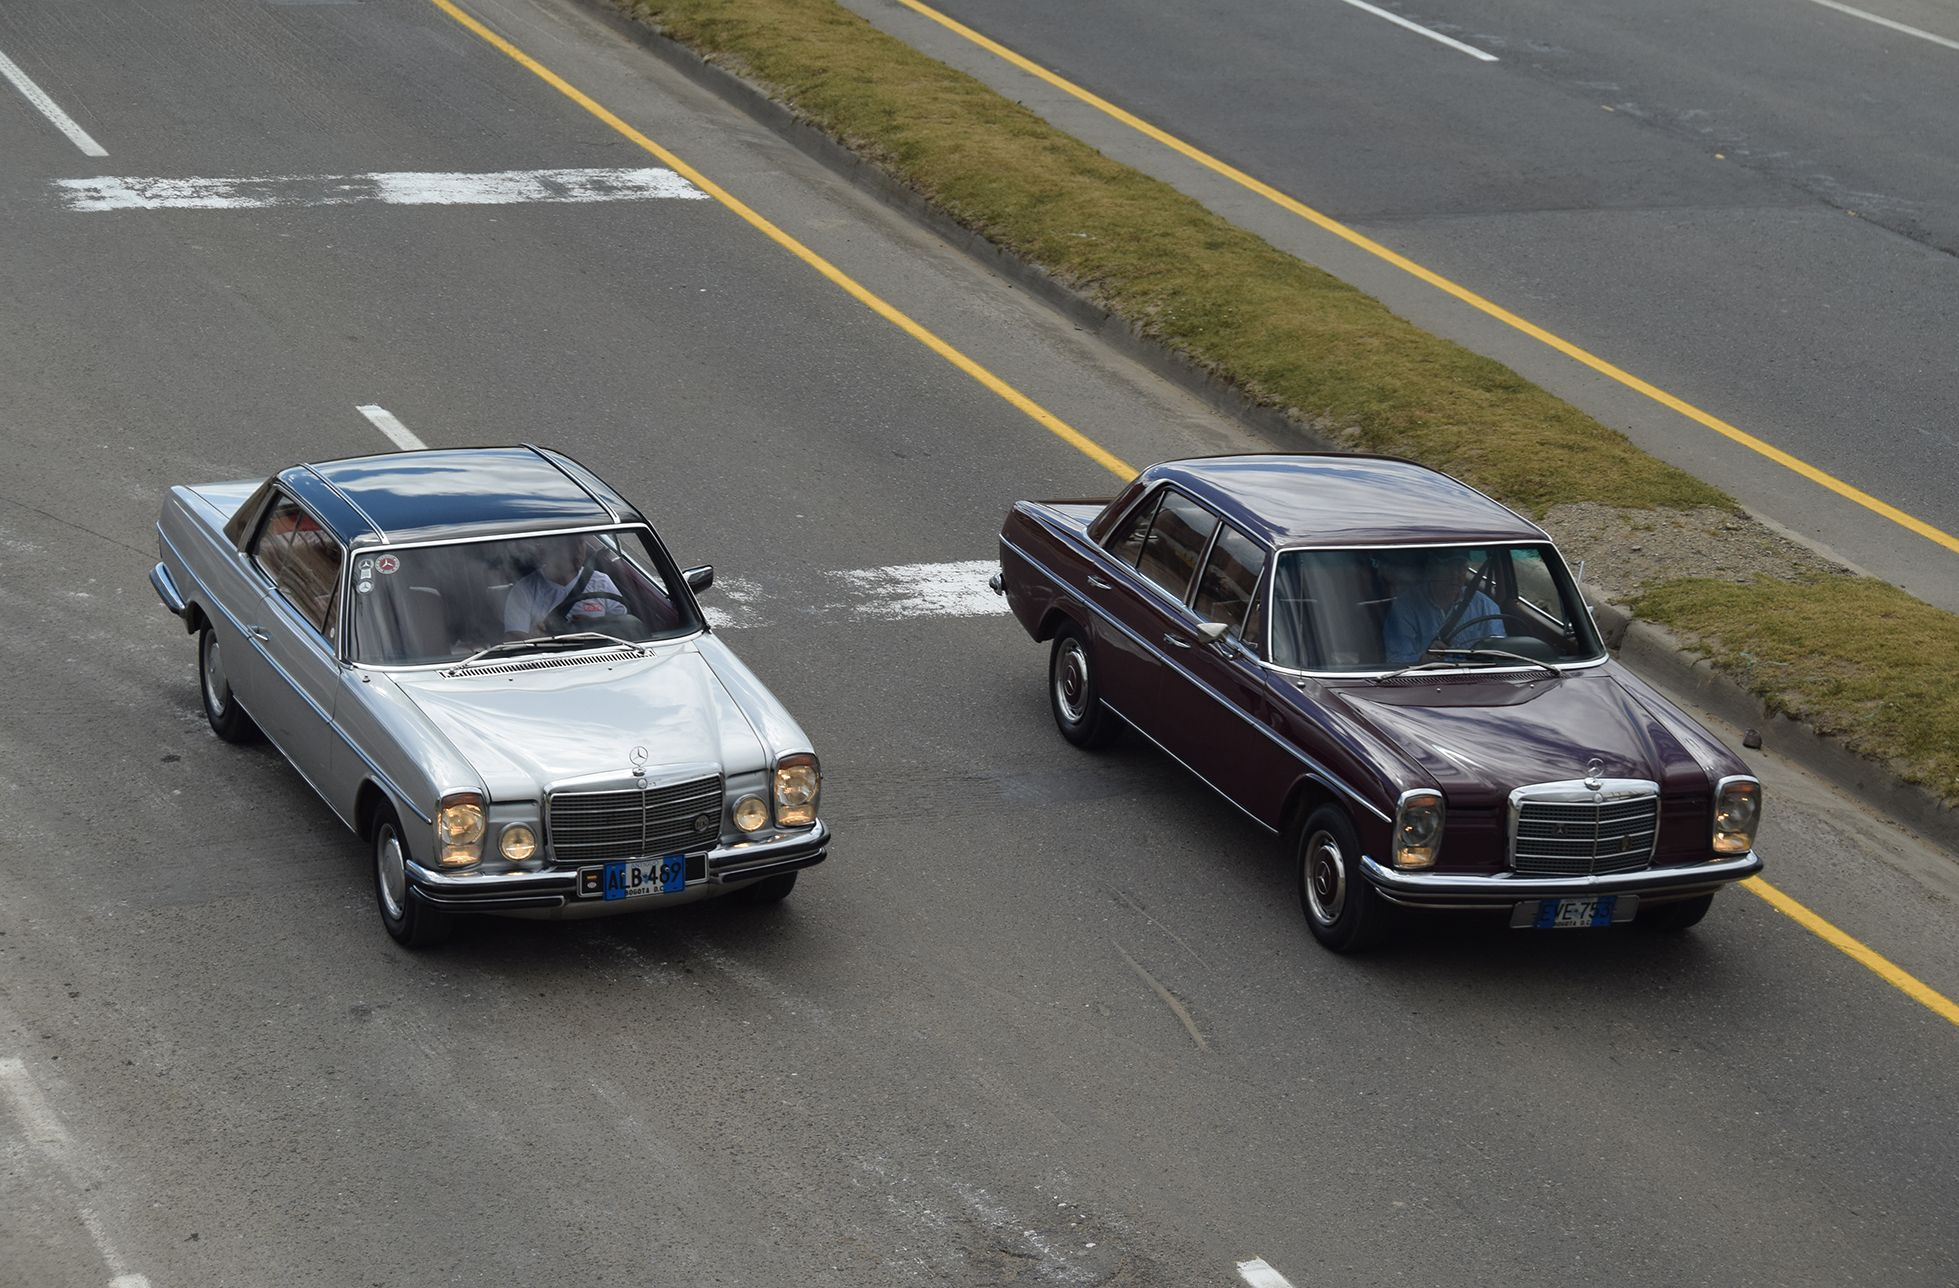 Mercedes Benz 250 2 8 1976 & 230 1970 W 114 Chocontá Colombia